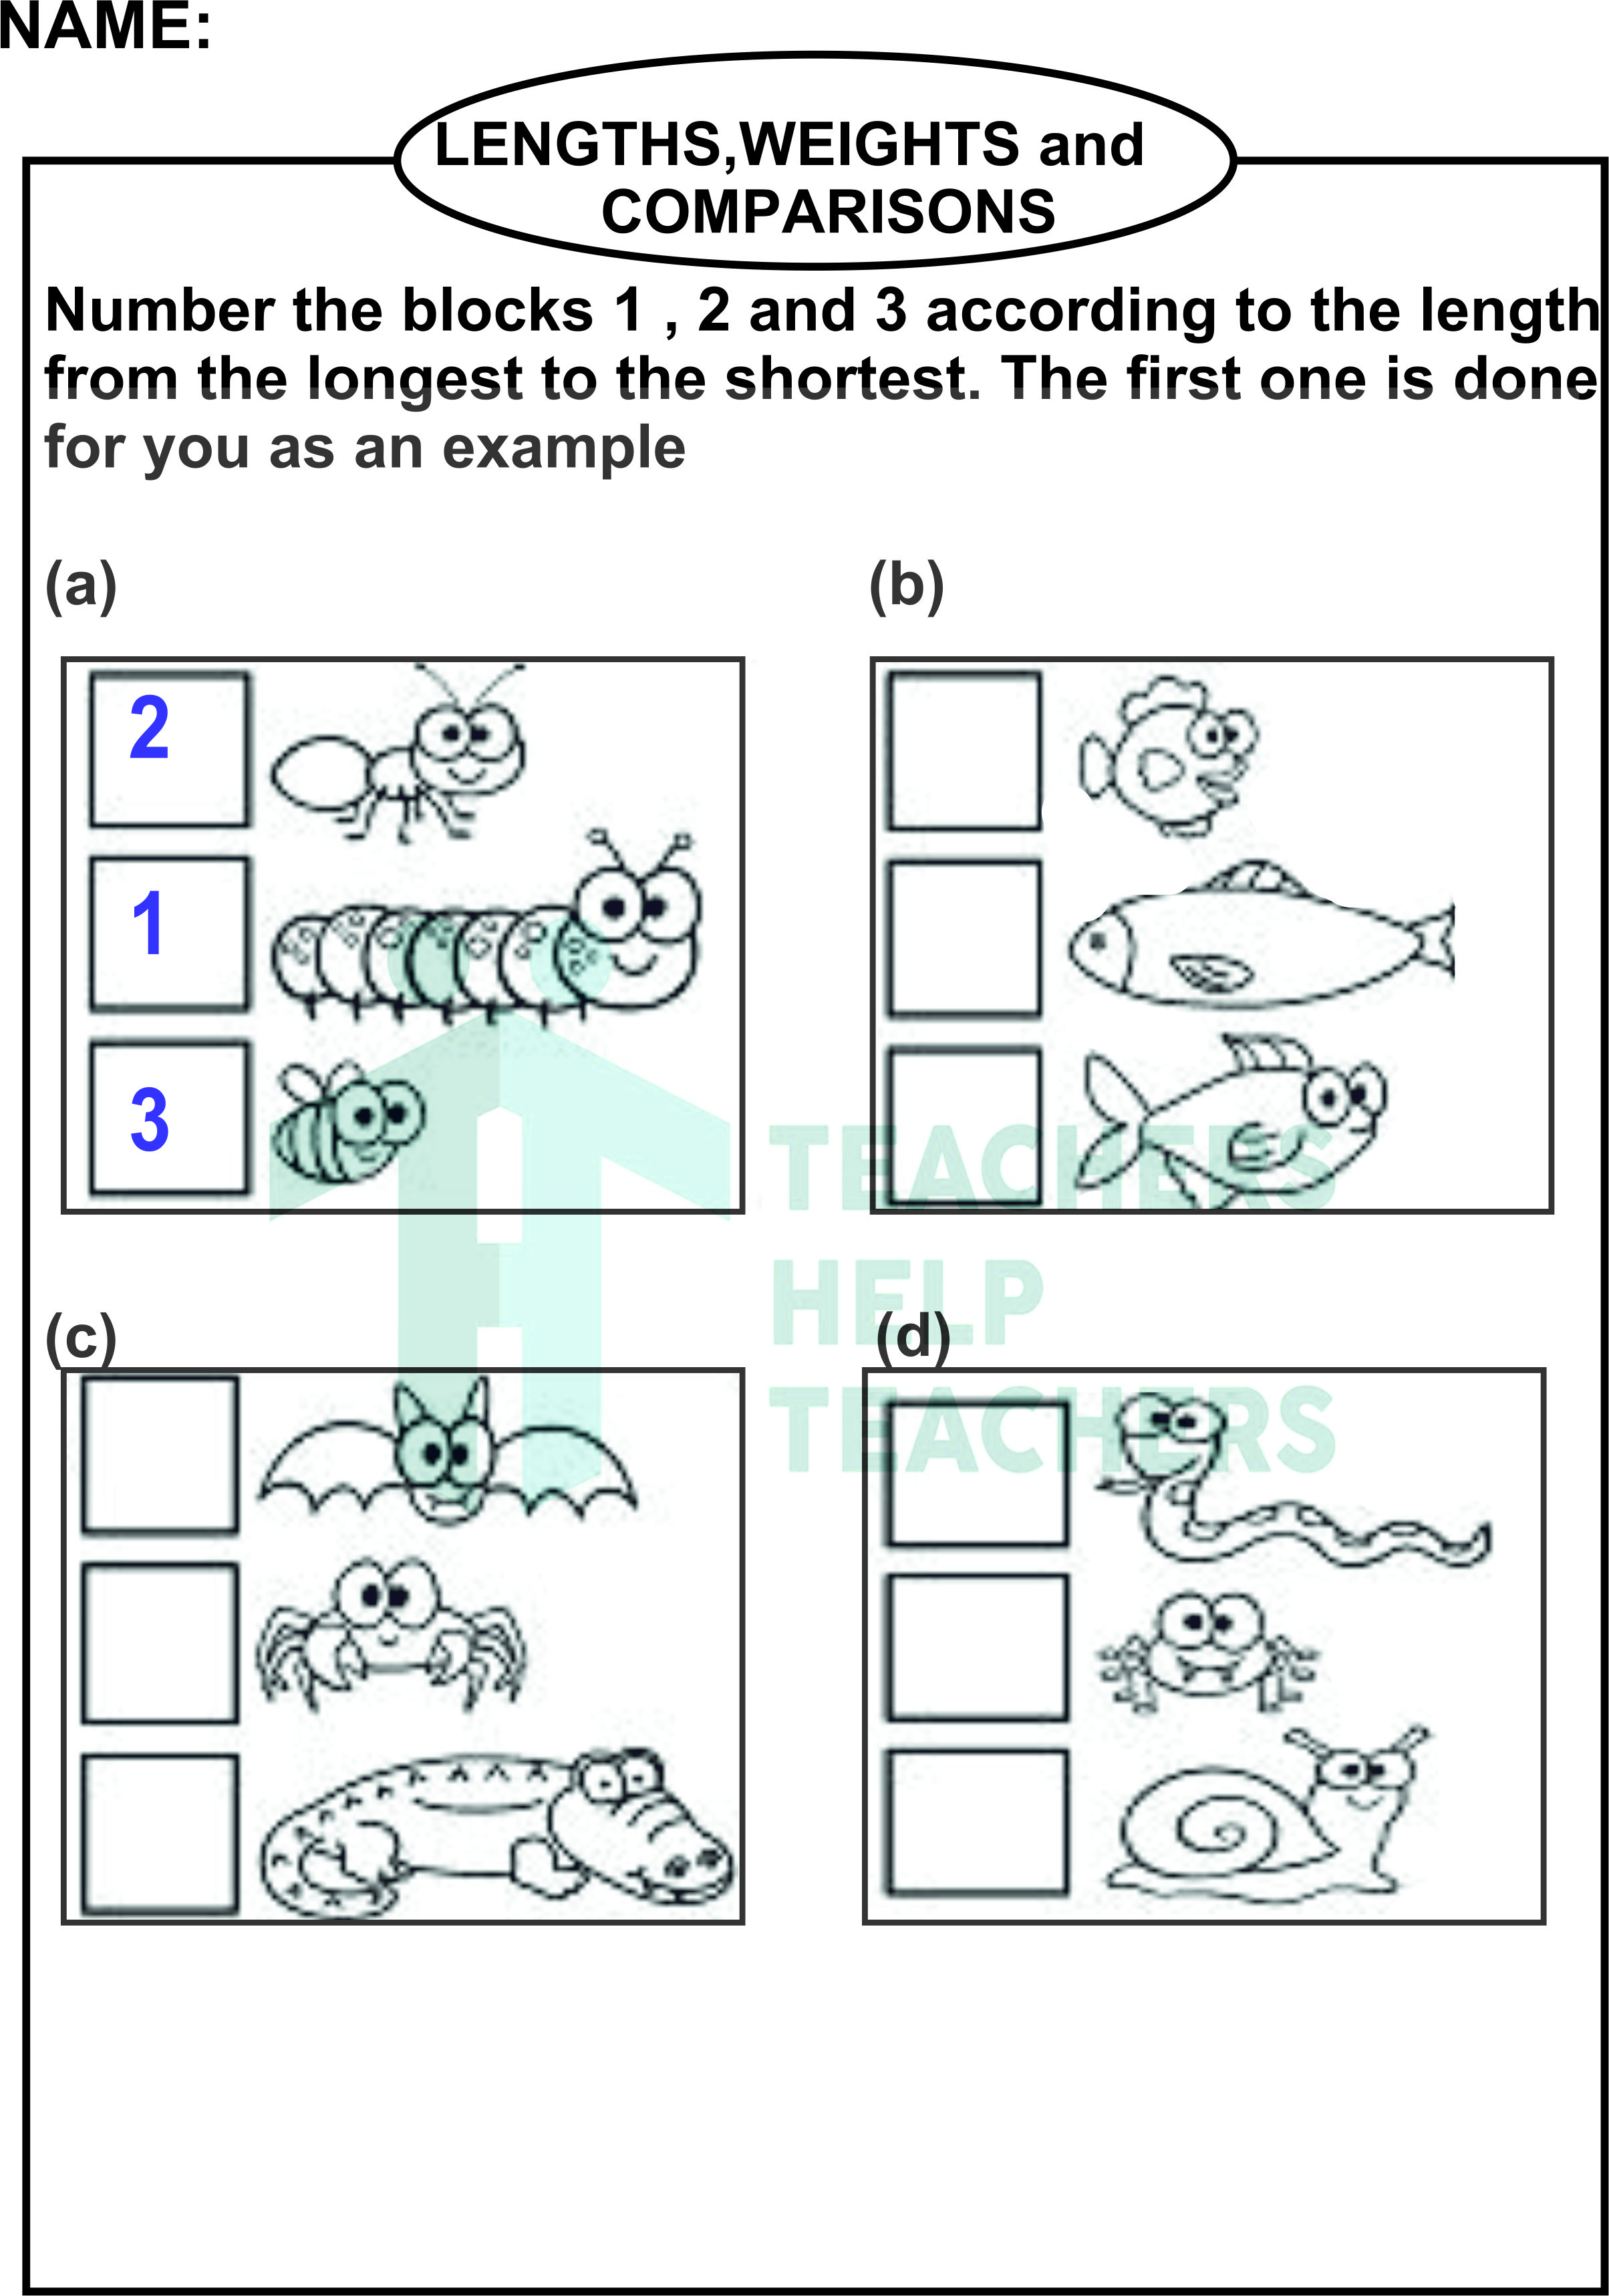 Worksheet On Length